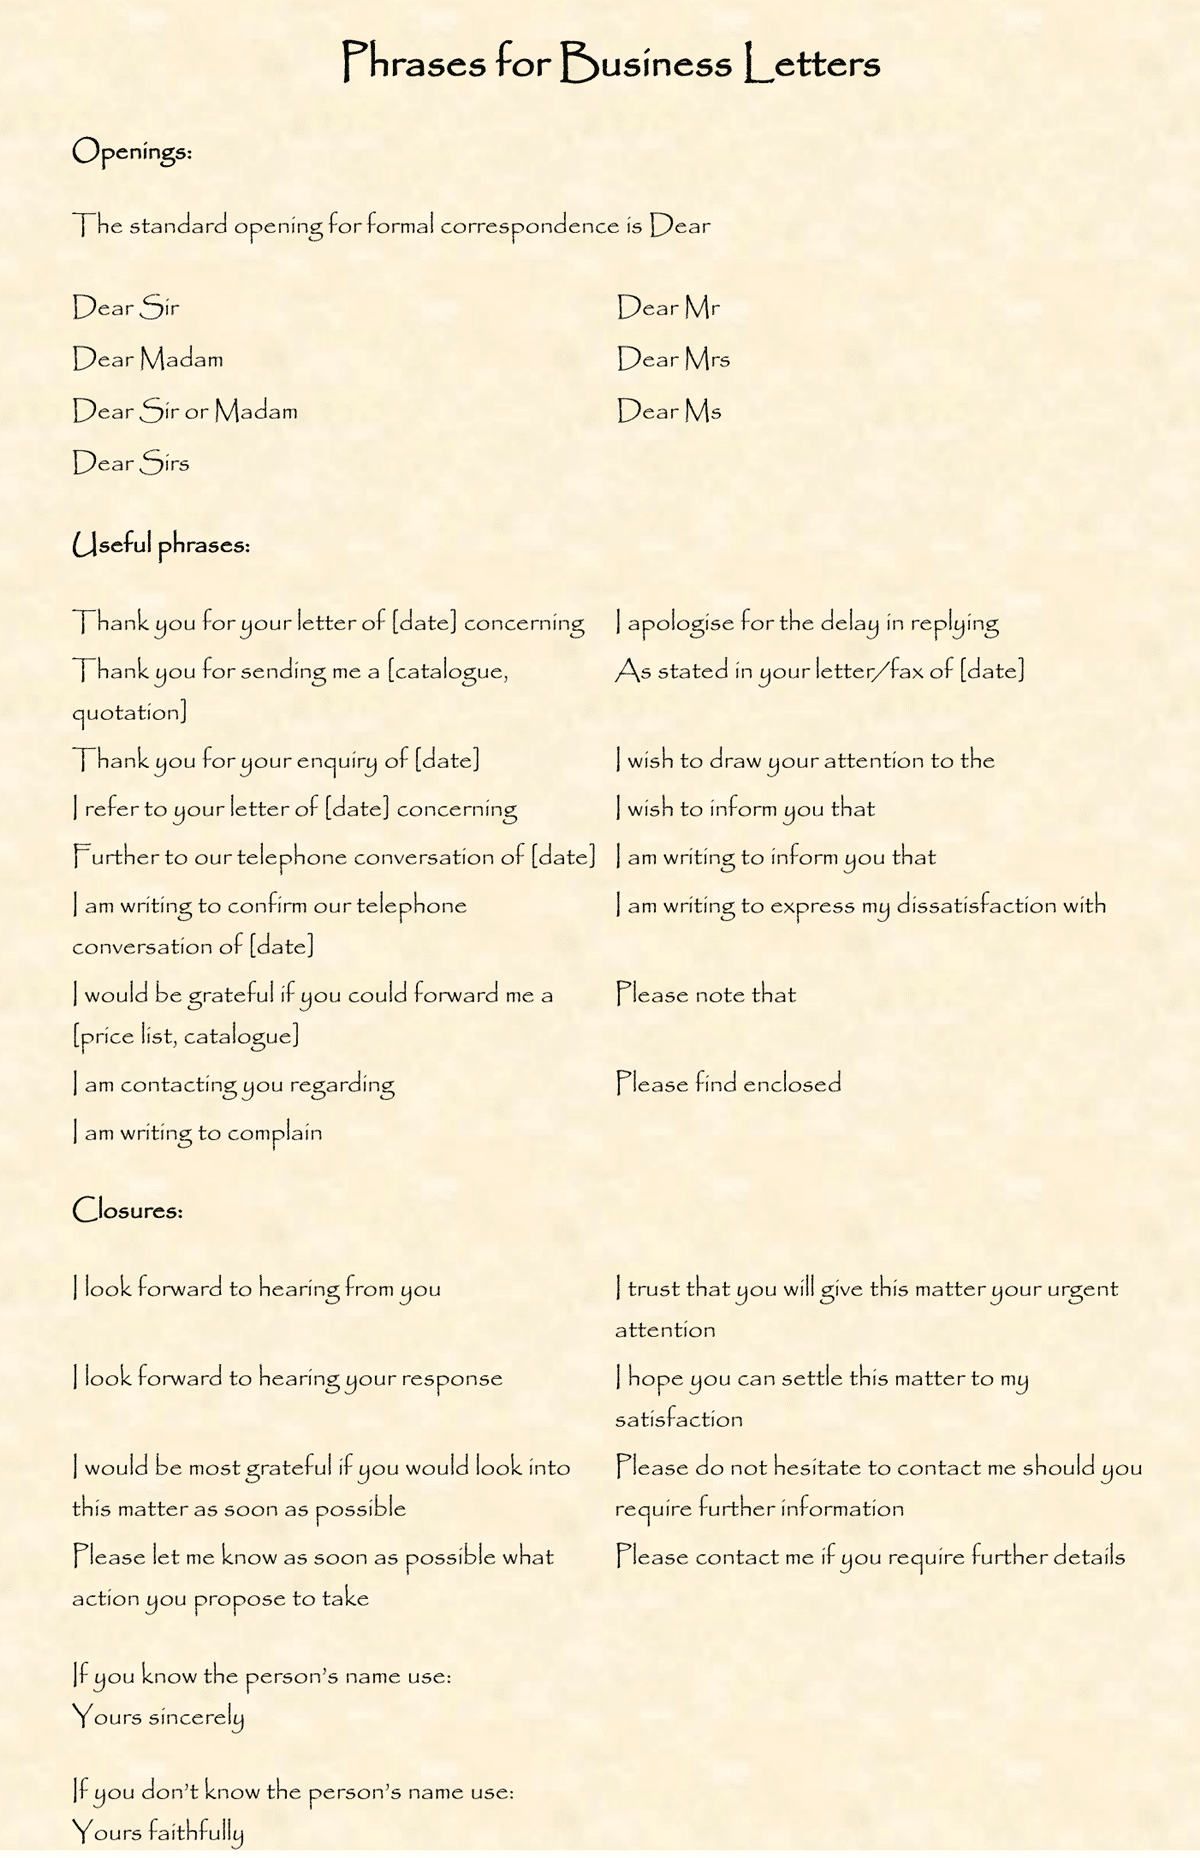 Useful Phrases and Vocabulary for Writing Letters in